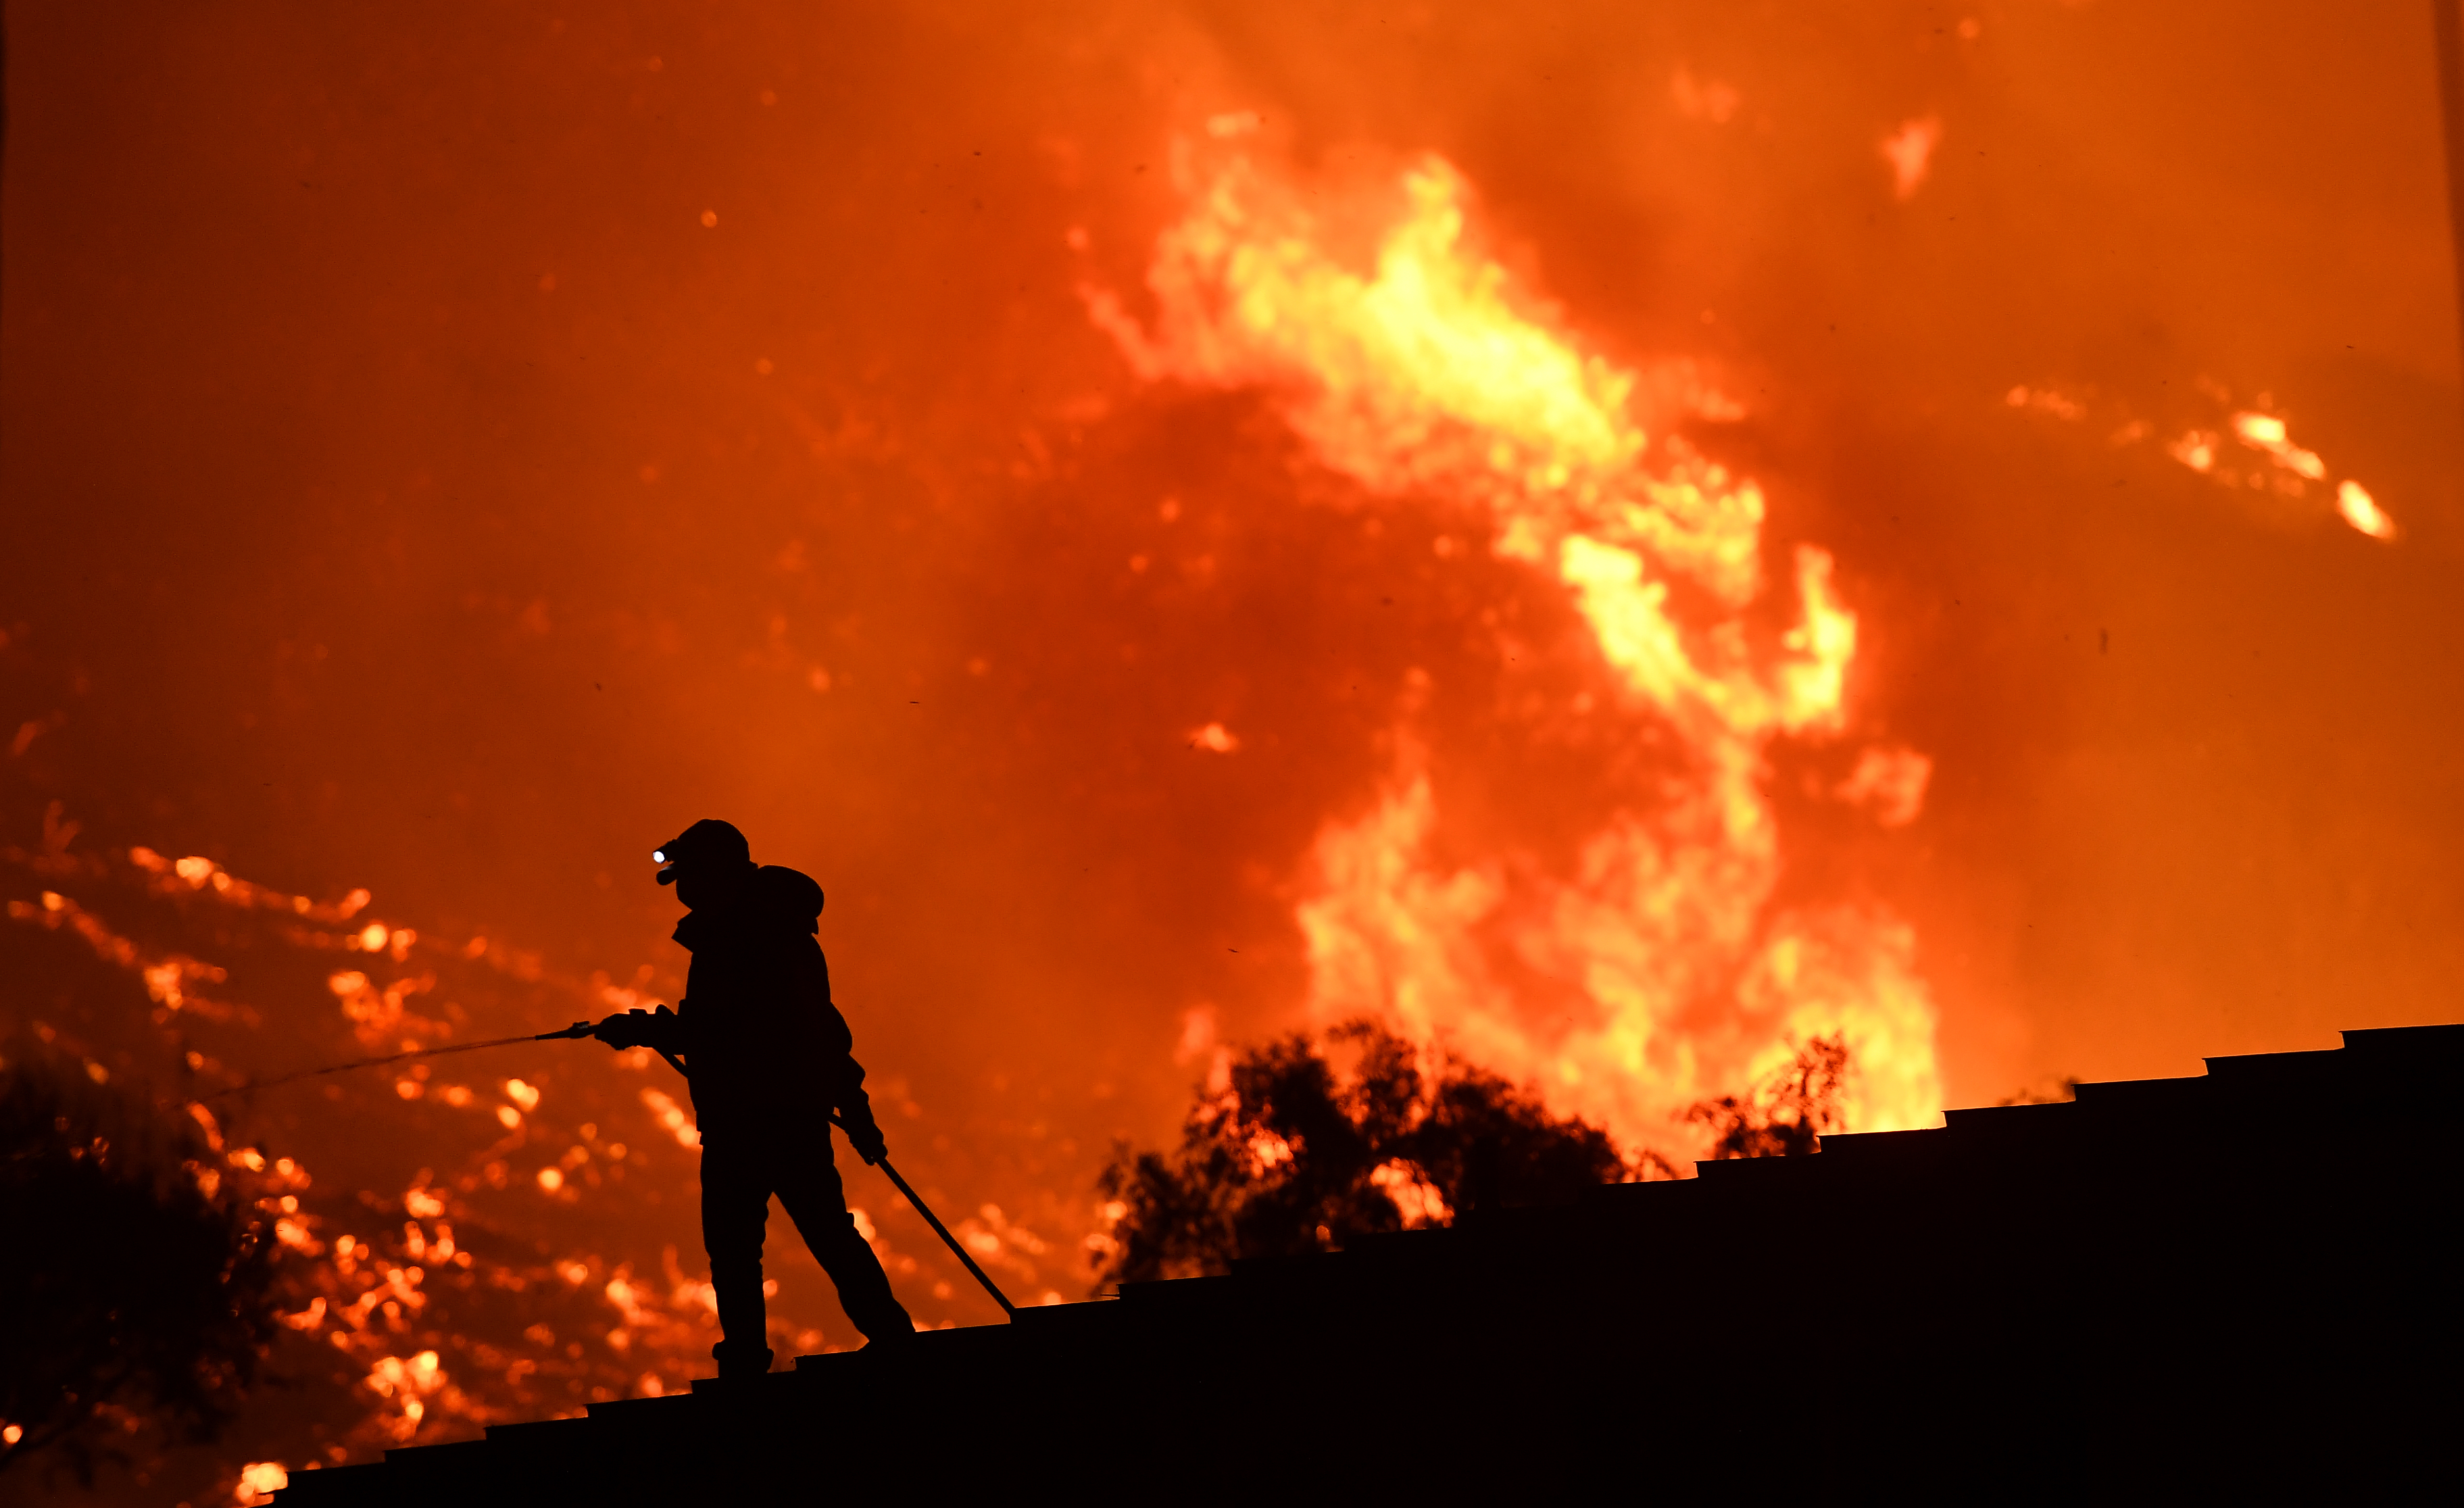 In Era When Hurricanes And Wildfires >> Southern California Wildfires Climate Change Emergency Rolling Stone